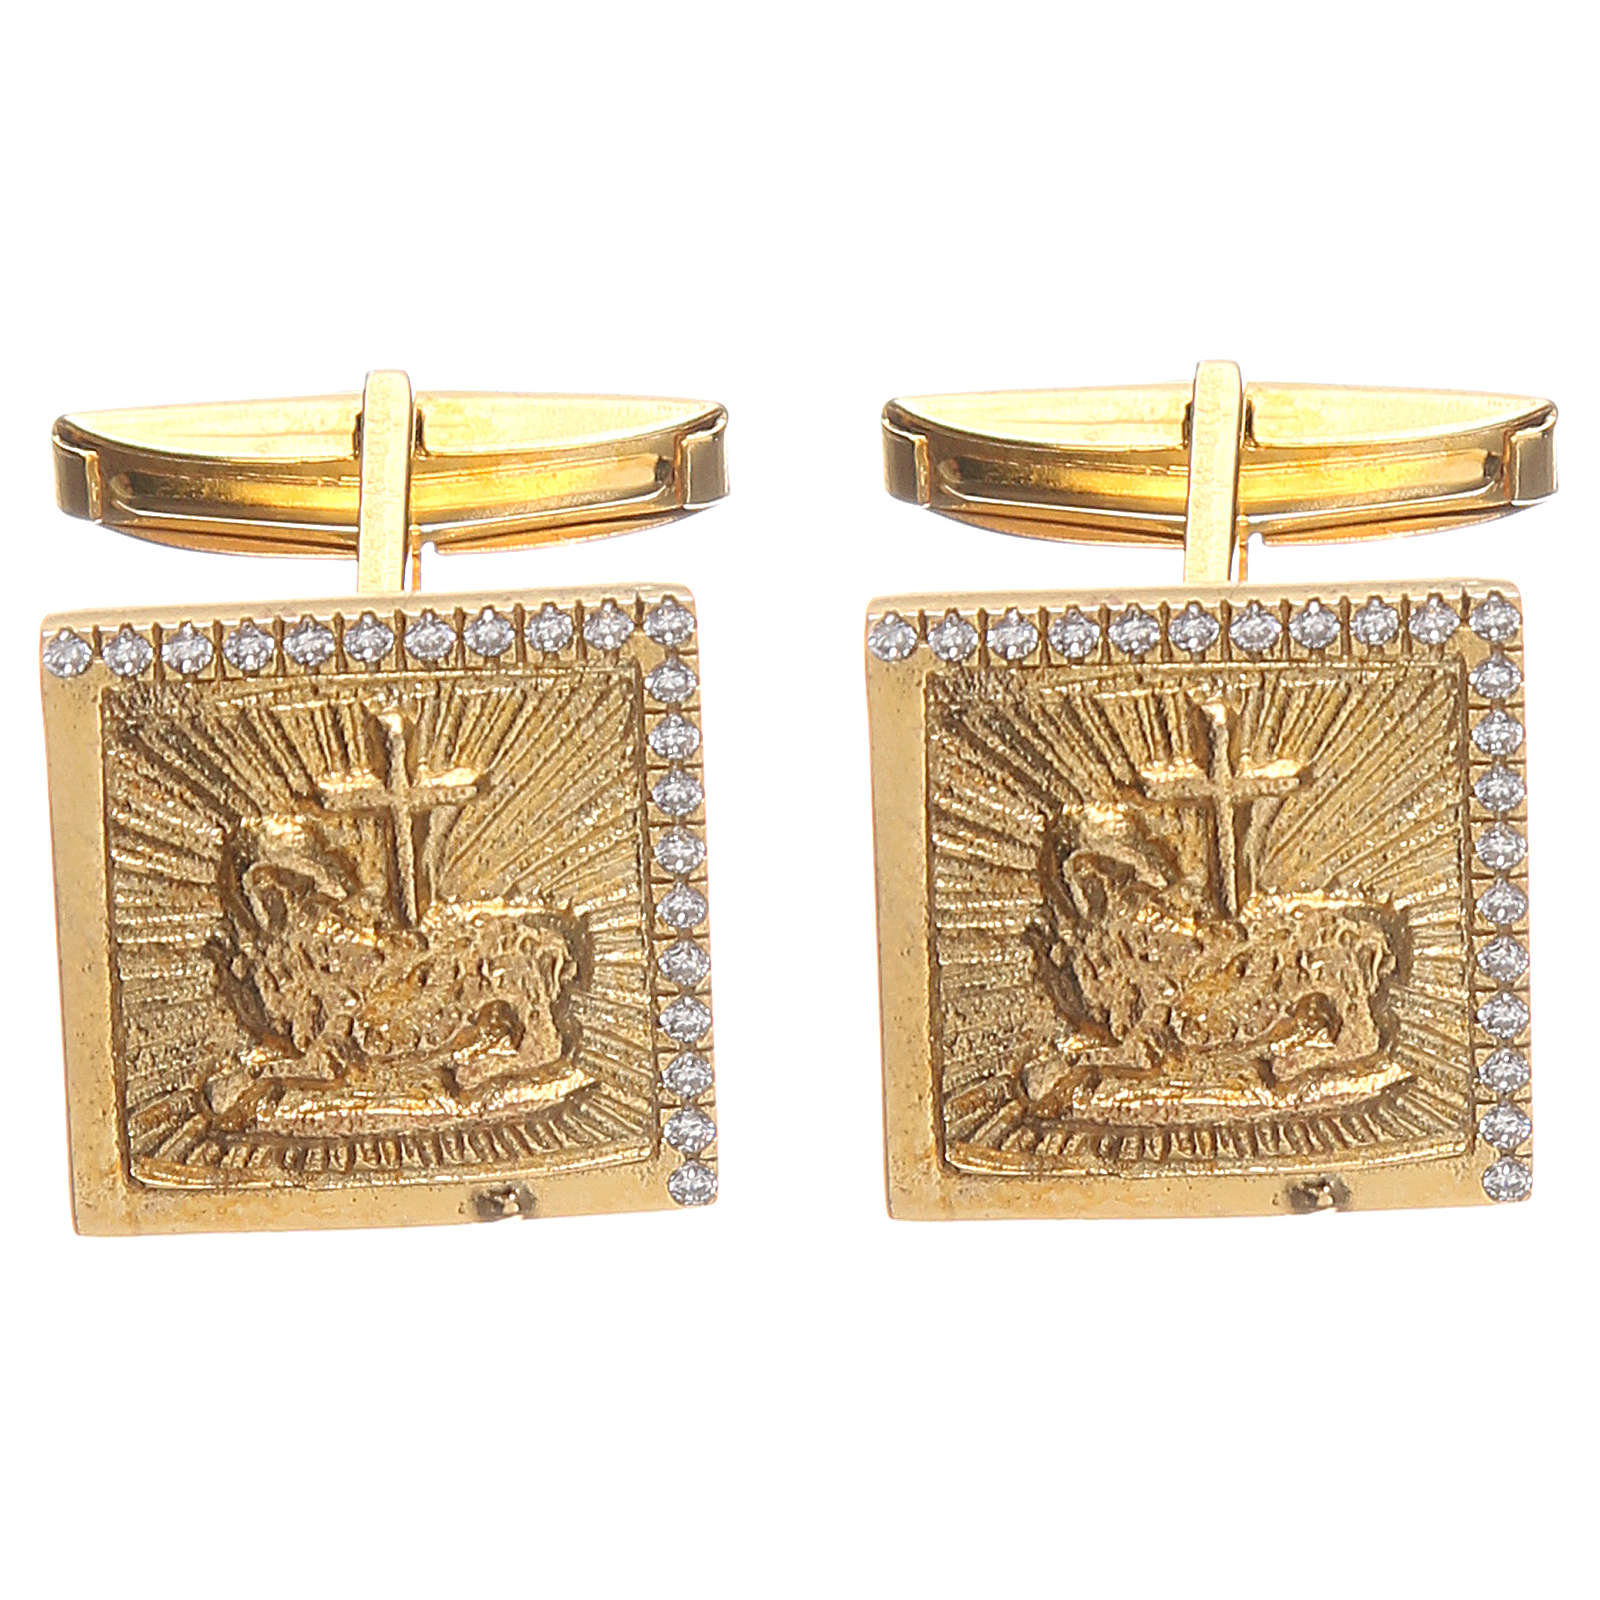 Christian cufflinks with Lamb of God, gold-plated silver 4